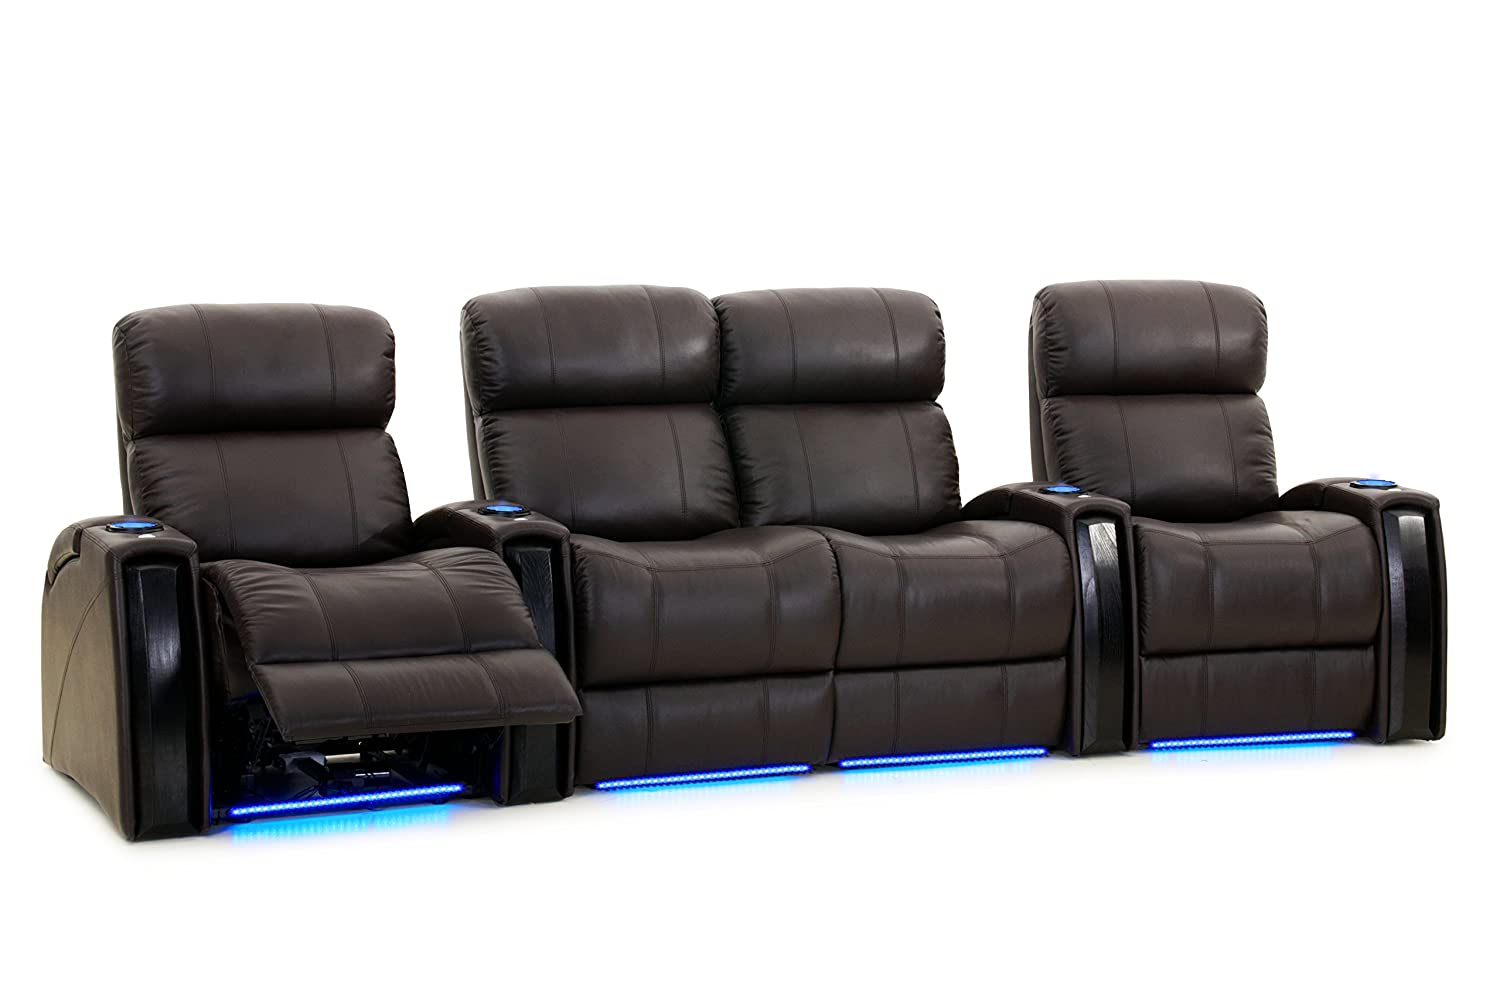 Octane seating nitro xl750 home theater furniture brown leather power recline lighted cup holders storage arms row of 4 seats with middle loveseat